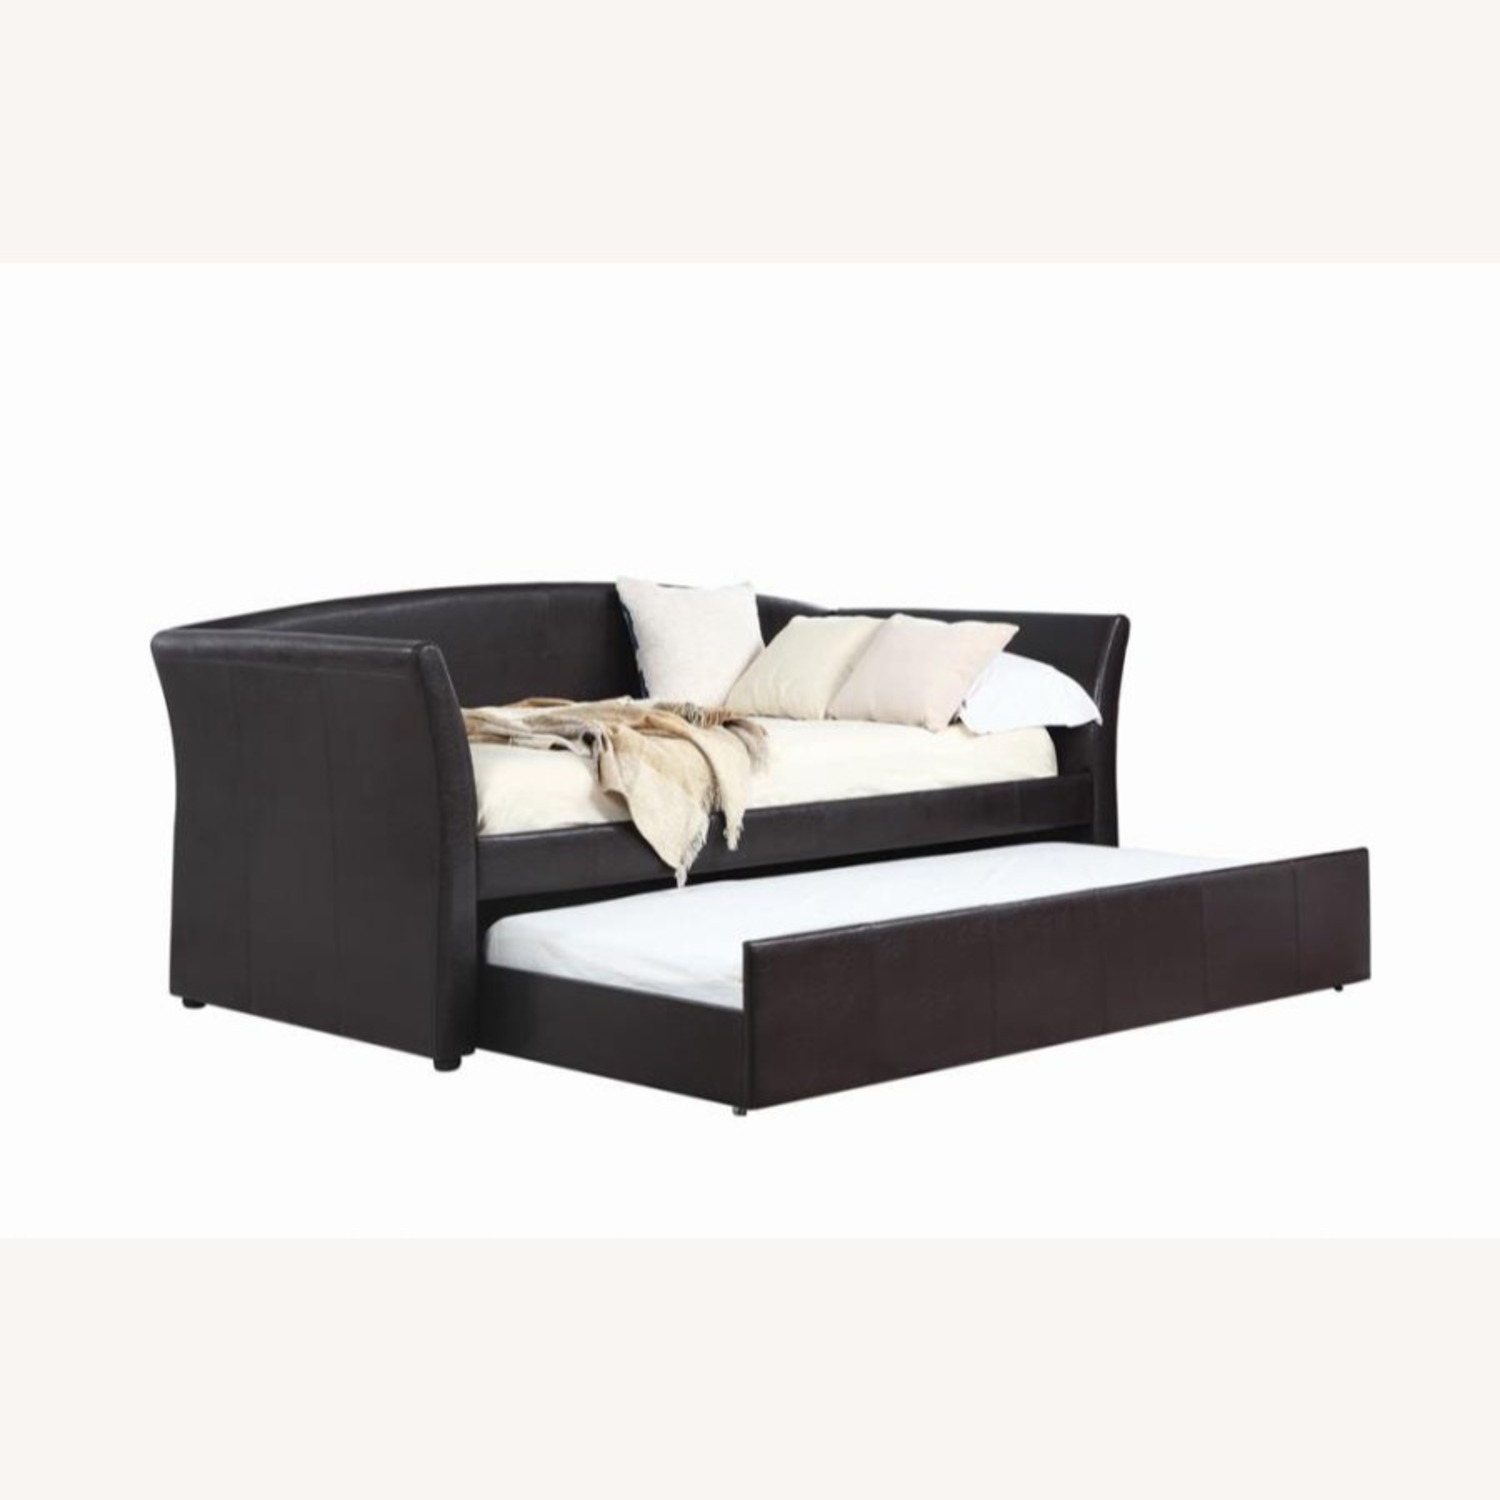 Twin Daybed In Dark Brown Leatherette Upholstery - image-1